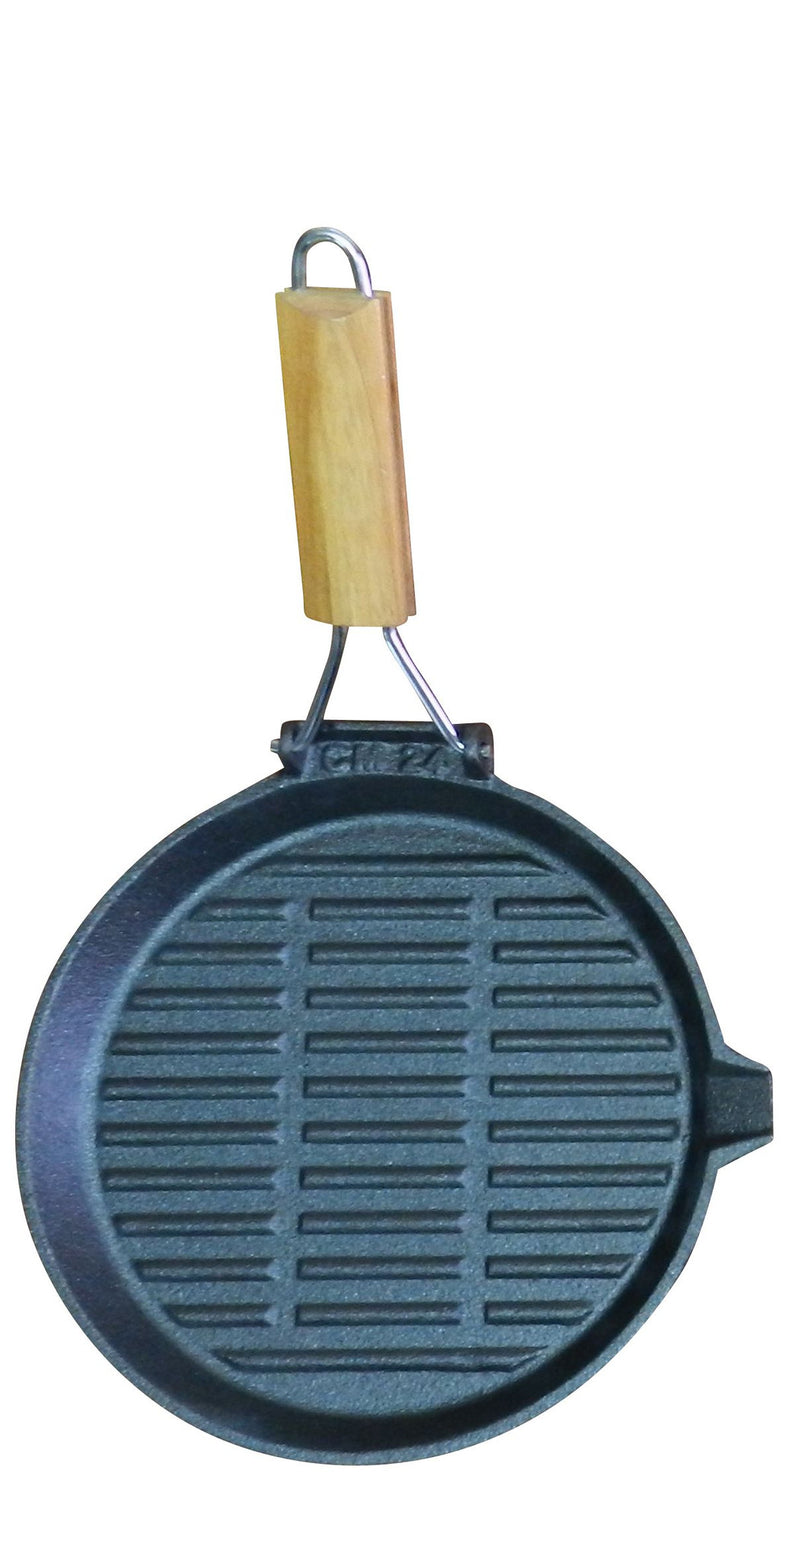 24cm Folding Handle Fry Pan - All About Camping